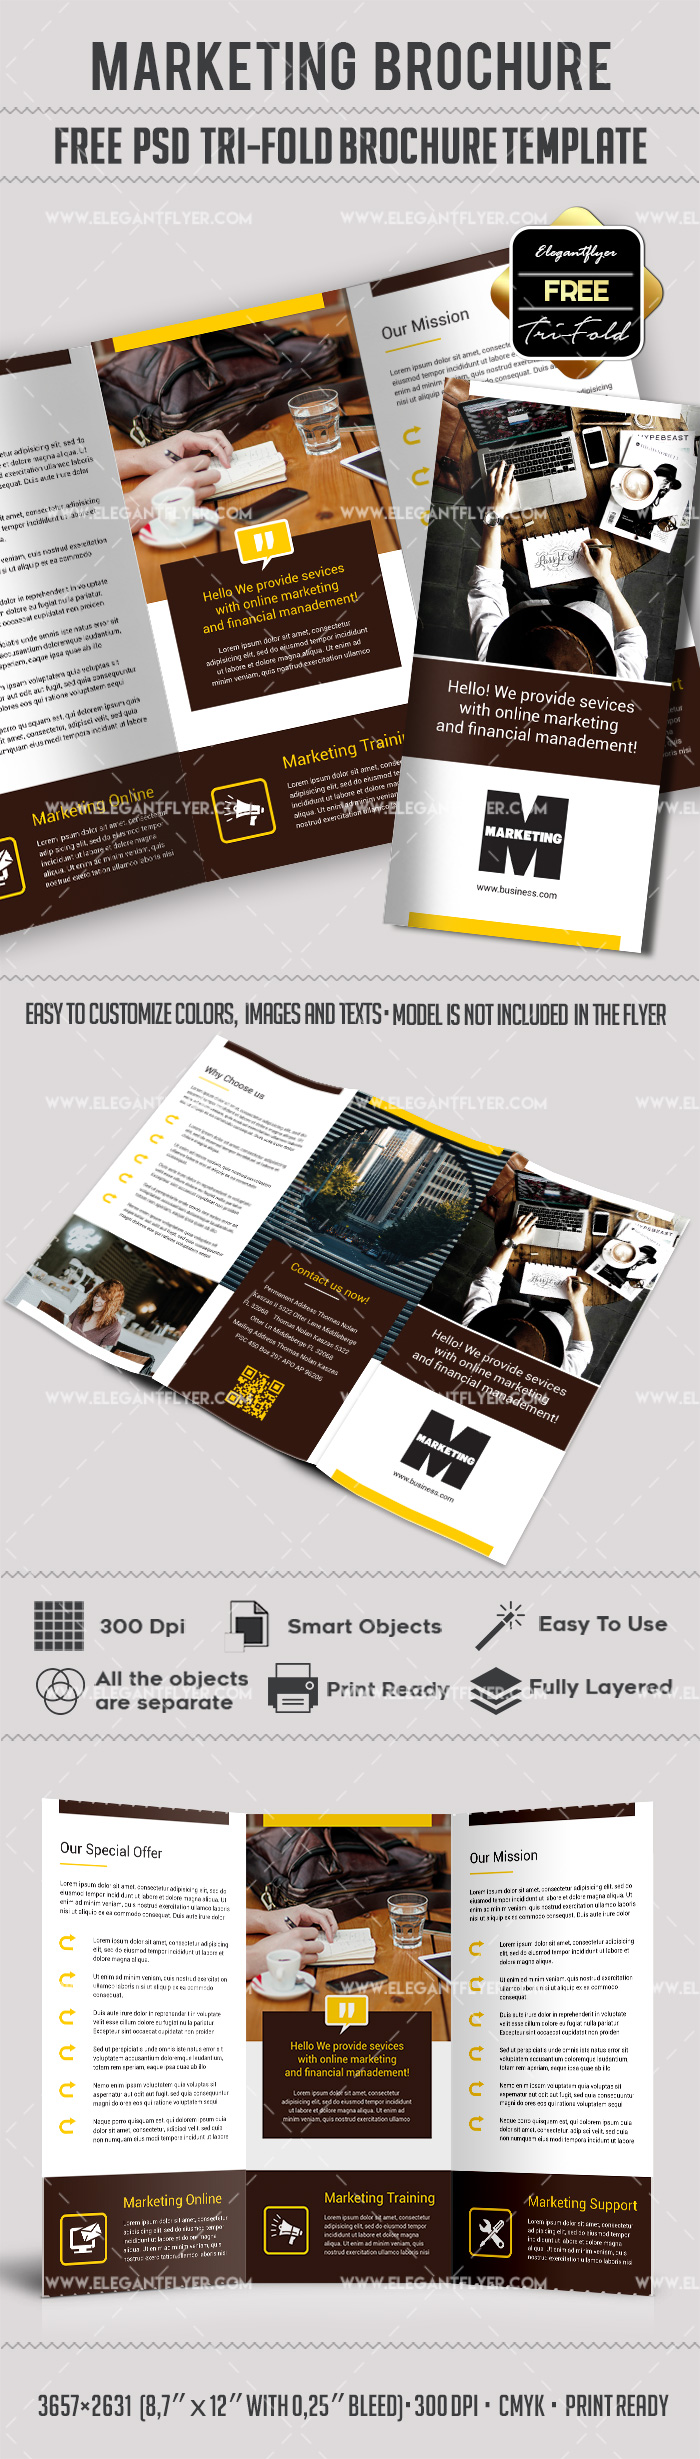 pamphlet photoshop template - marketing free tri fold psd brochure template by